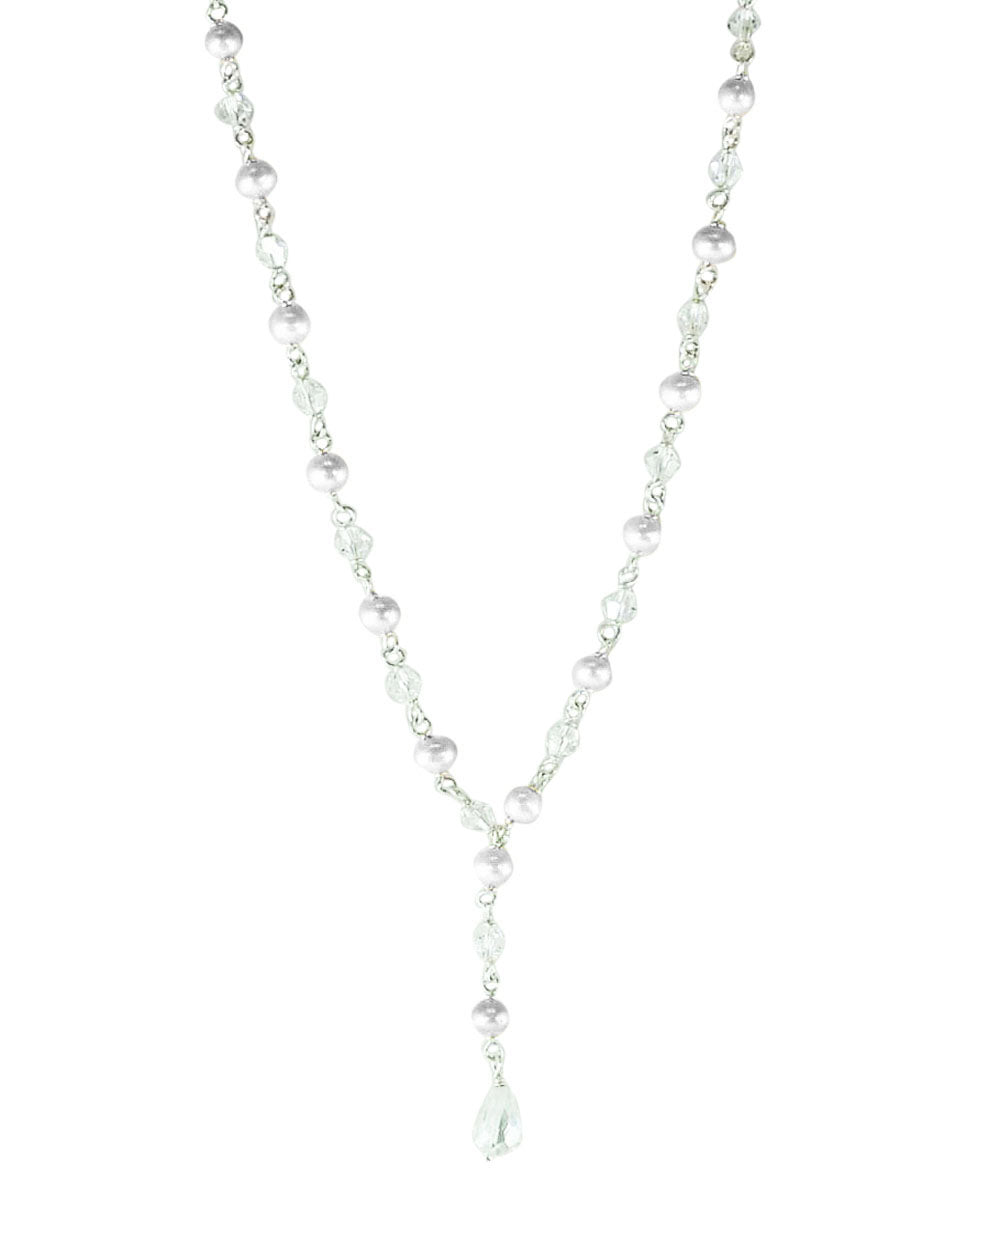 Sparkling Natural White Pearls and Crystals Necklace